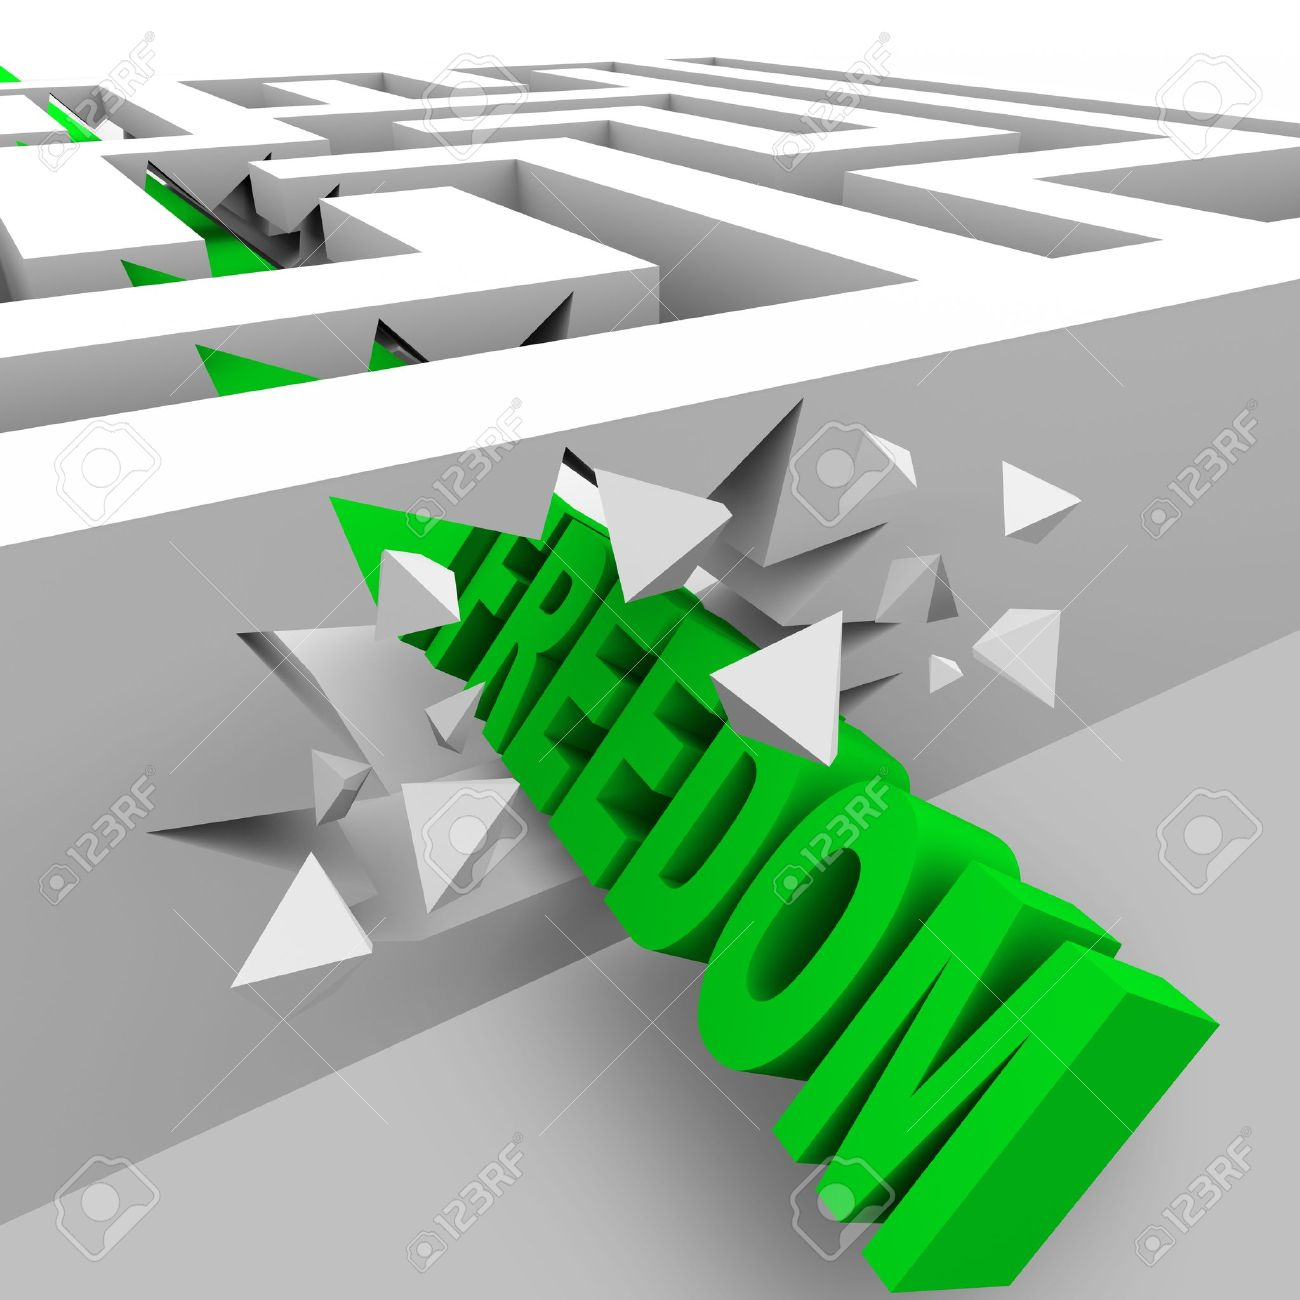 A green word Freedom crashes through the walls of a maze to break through the barriers of oppression Stock Photo - 9448032